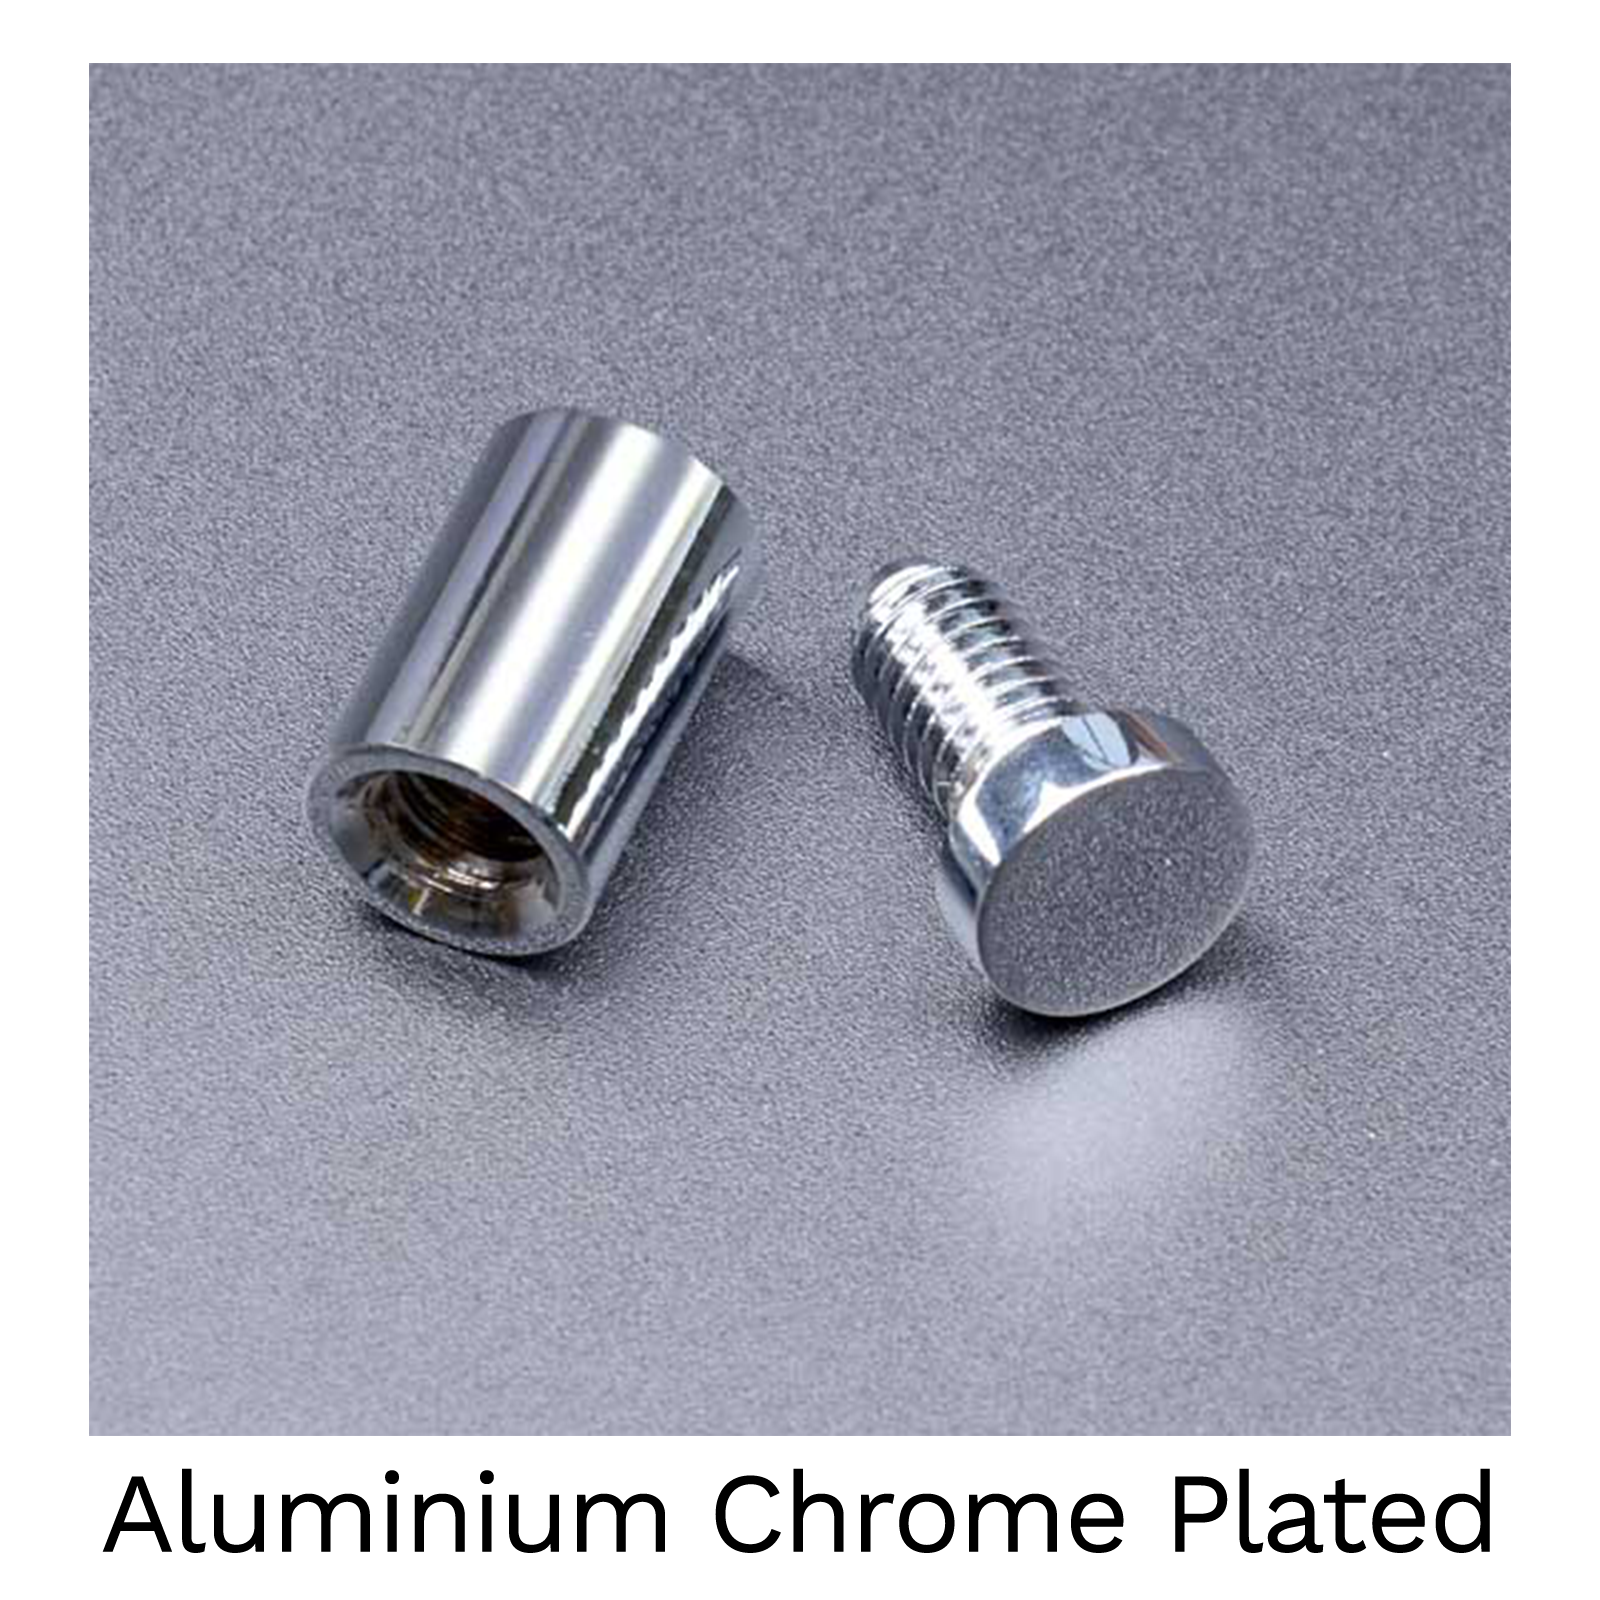 Aluminium Chrome Plated - 19mm Stand Off Wall Fixings - Pack of 4